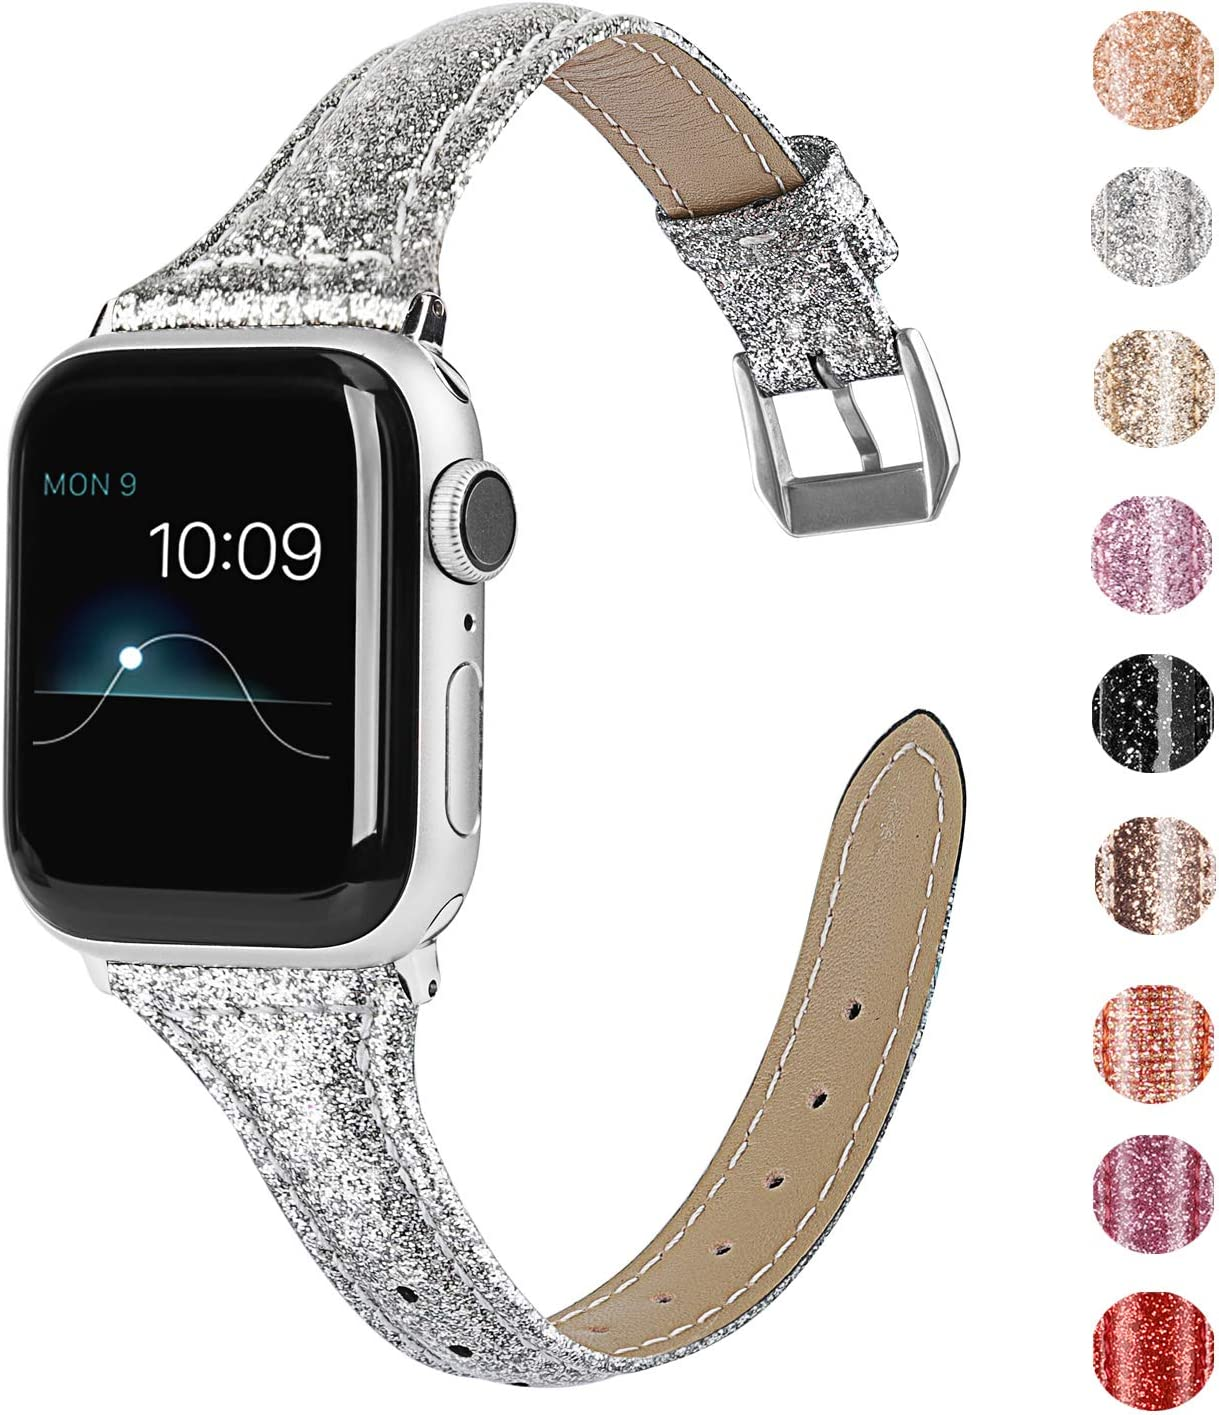 Wearlizer Silver Thin Glitter Leather Compatible with Apple Watch Bands 38mm 40mm Women for iWatch SE Slim Wristband Glistening Strap Replacement Bracelet with Silver Metal Clasp Series 6 5 4 3 2 1